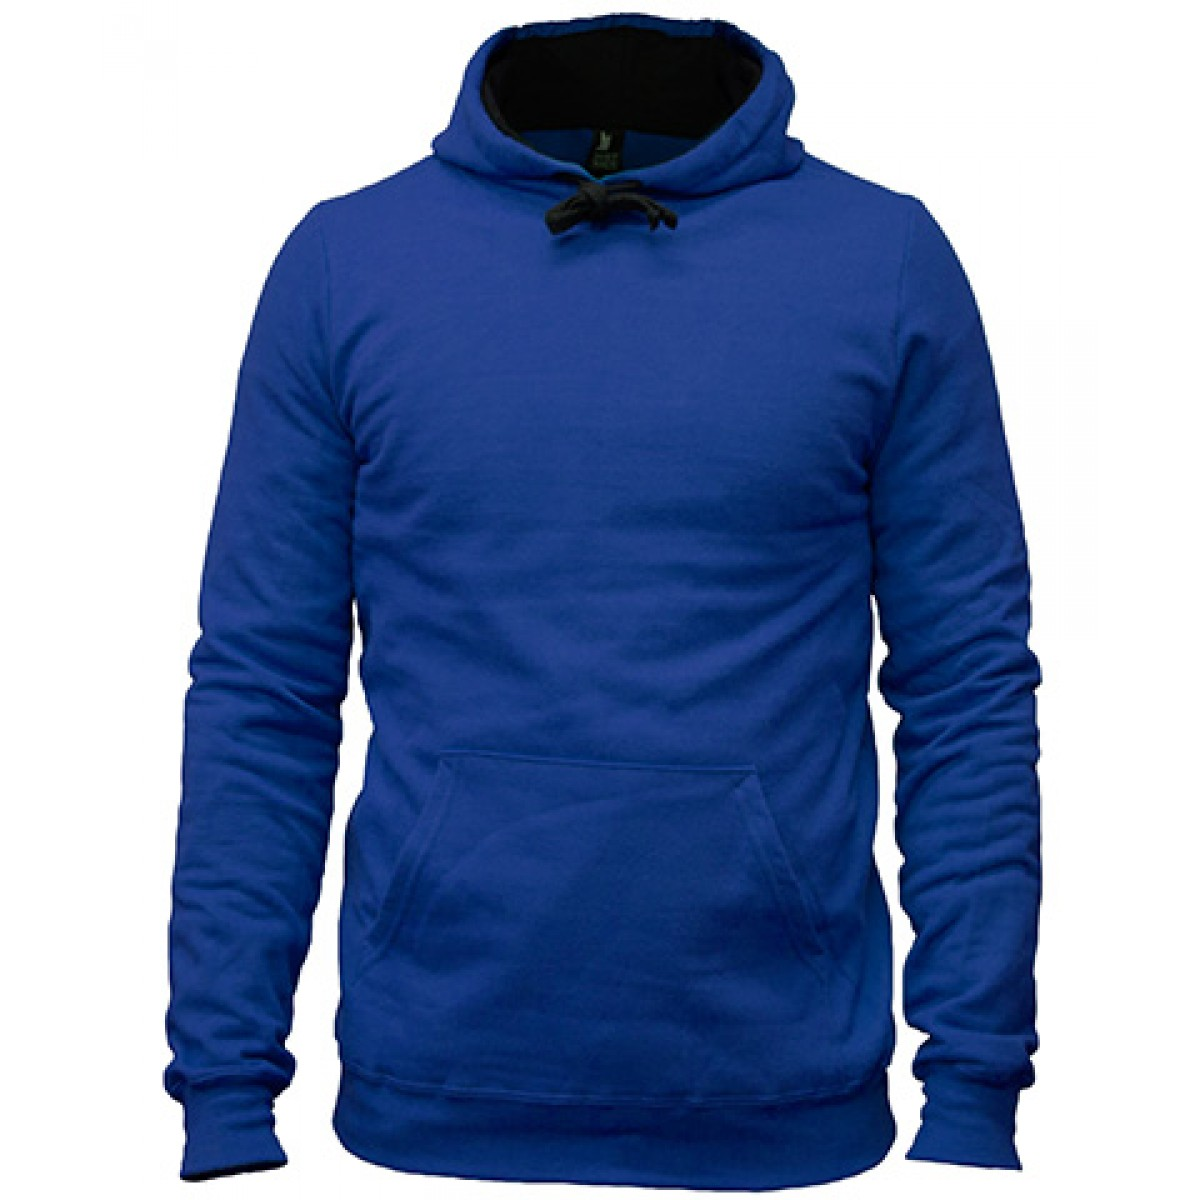 Concert Fleece Hoodie-Royal Blue-S